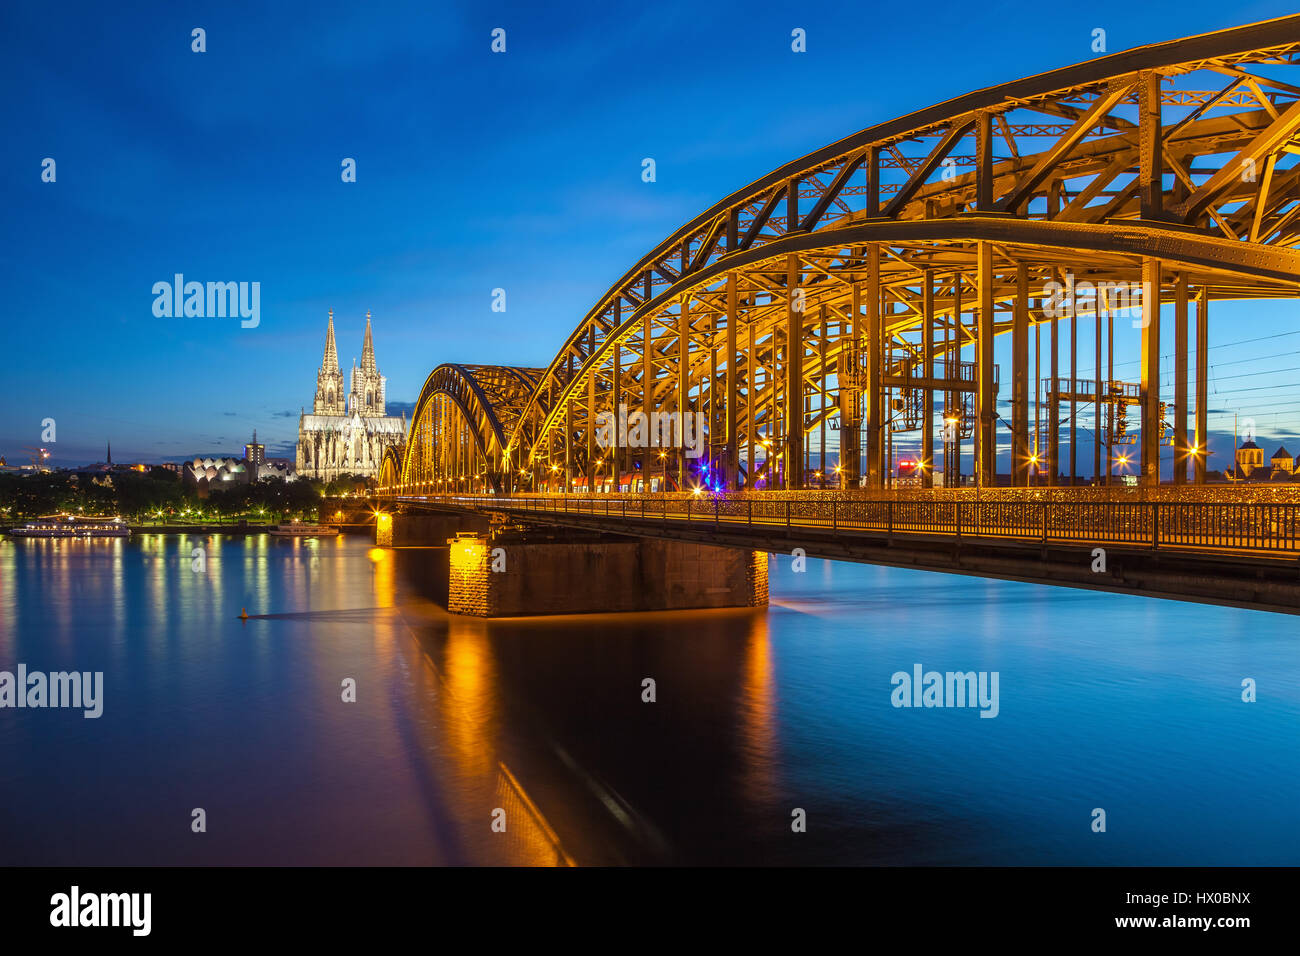 Cologne city skyline at night, Cologne, Allemagne Photo Stock